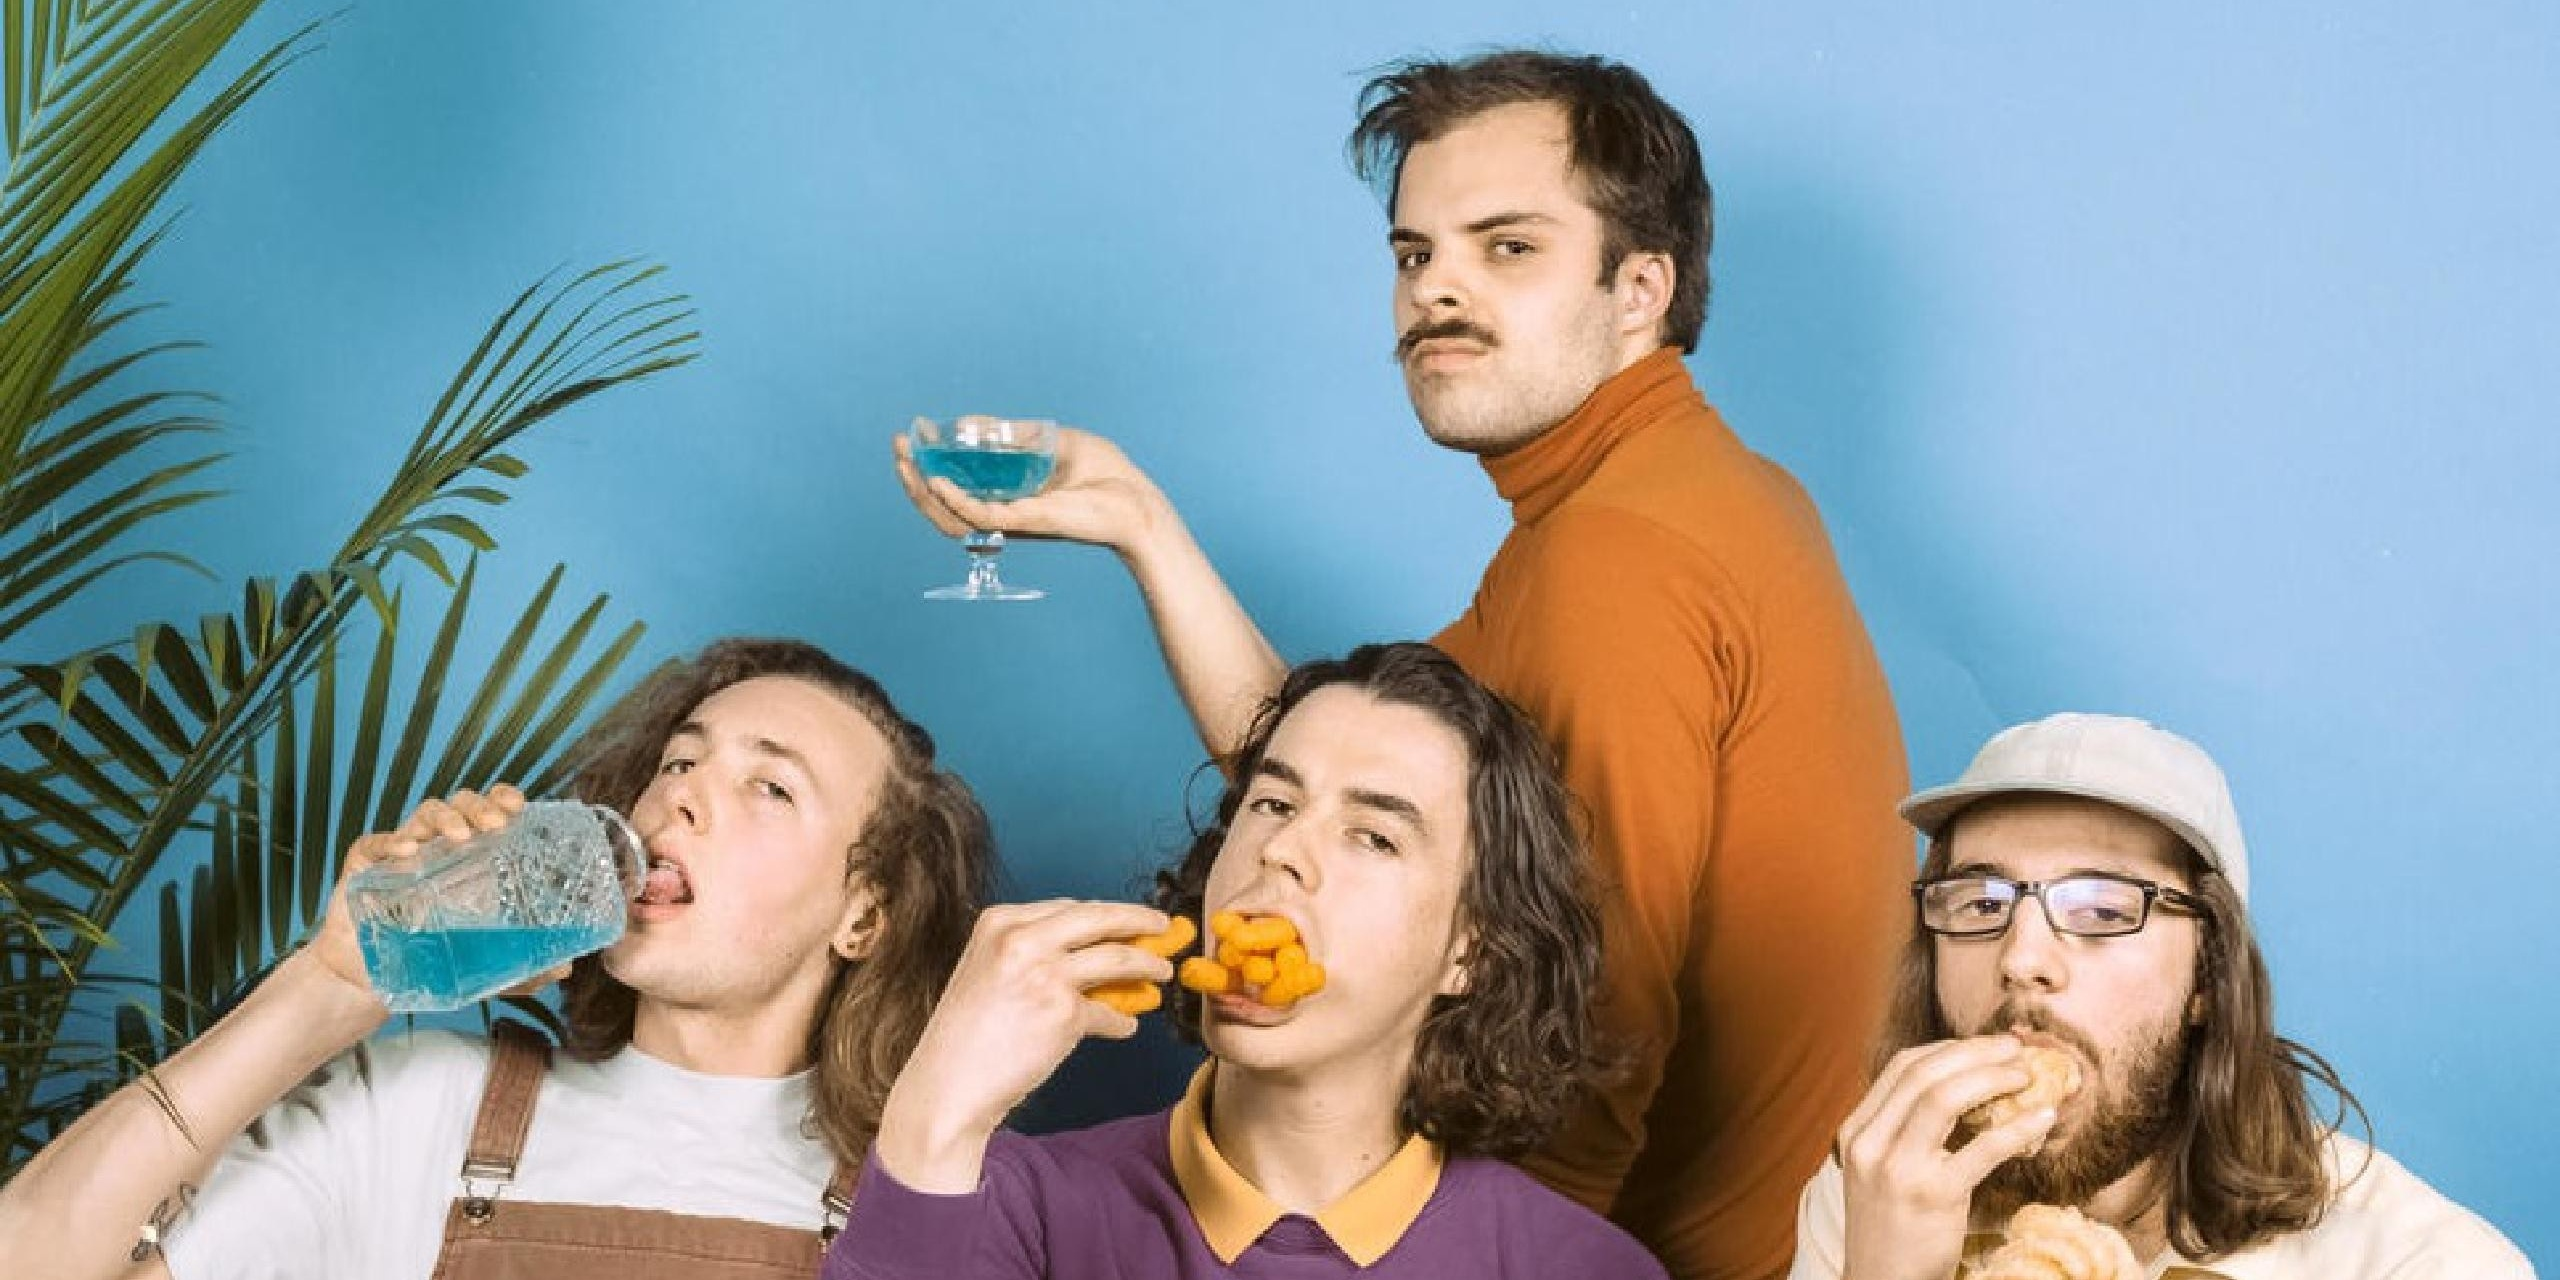 Peach Pit will play an additional show in Singapore